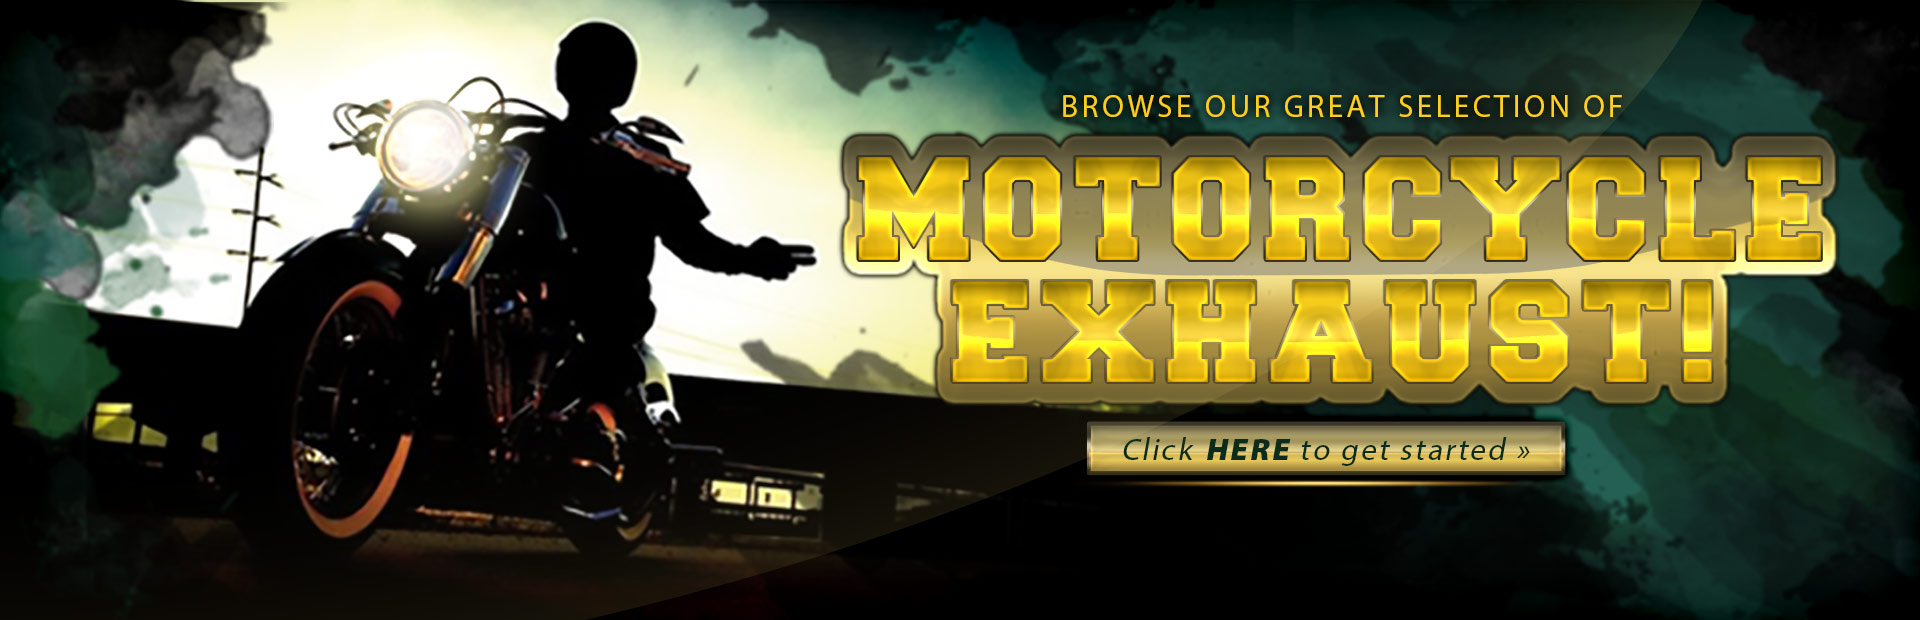 Click here to browse our great selection of motorcycle exhaust!